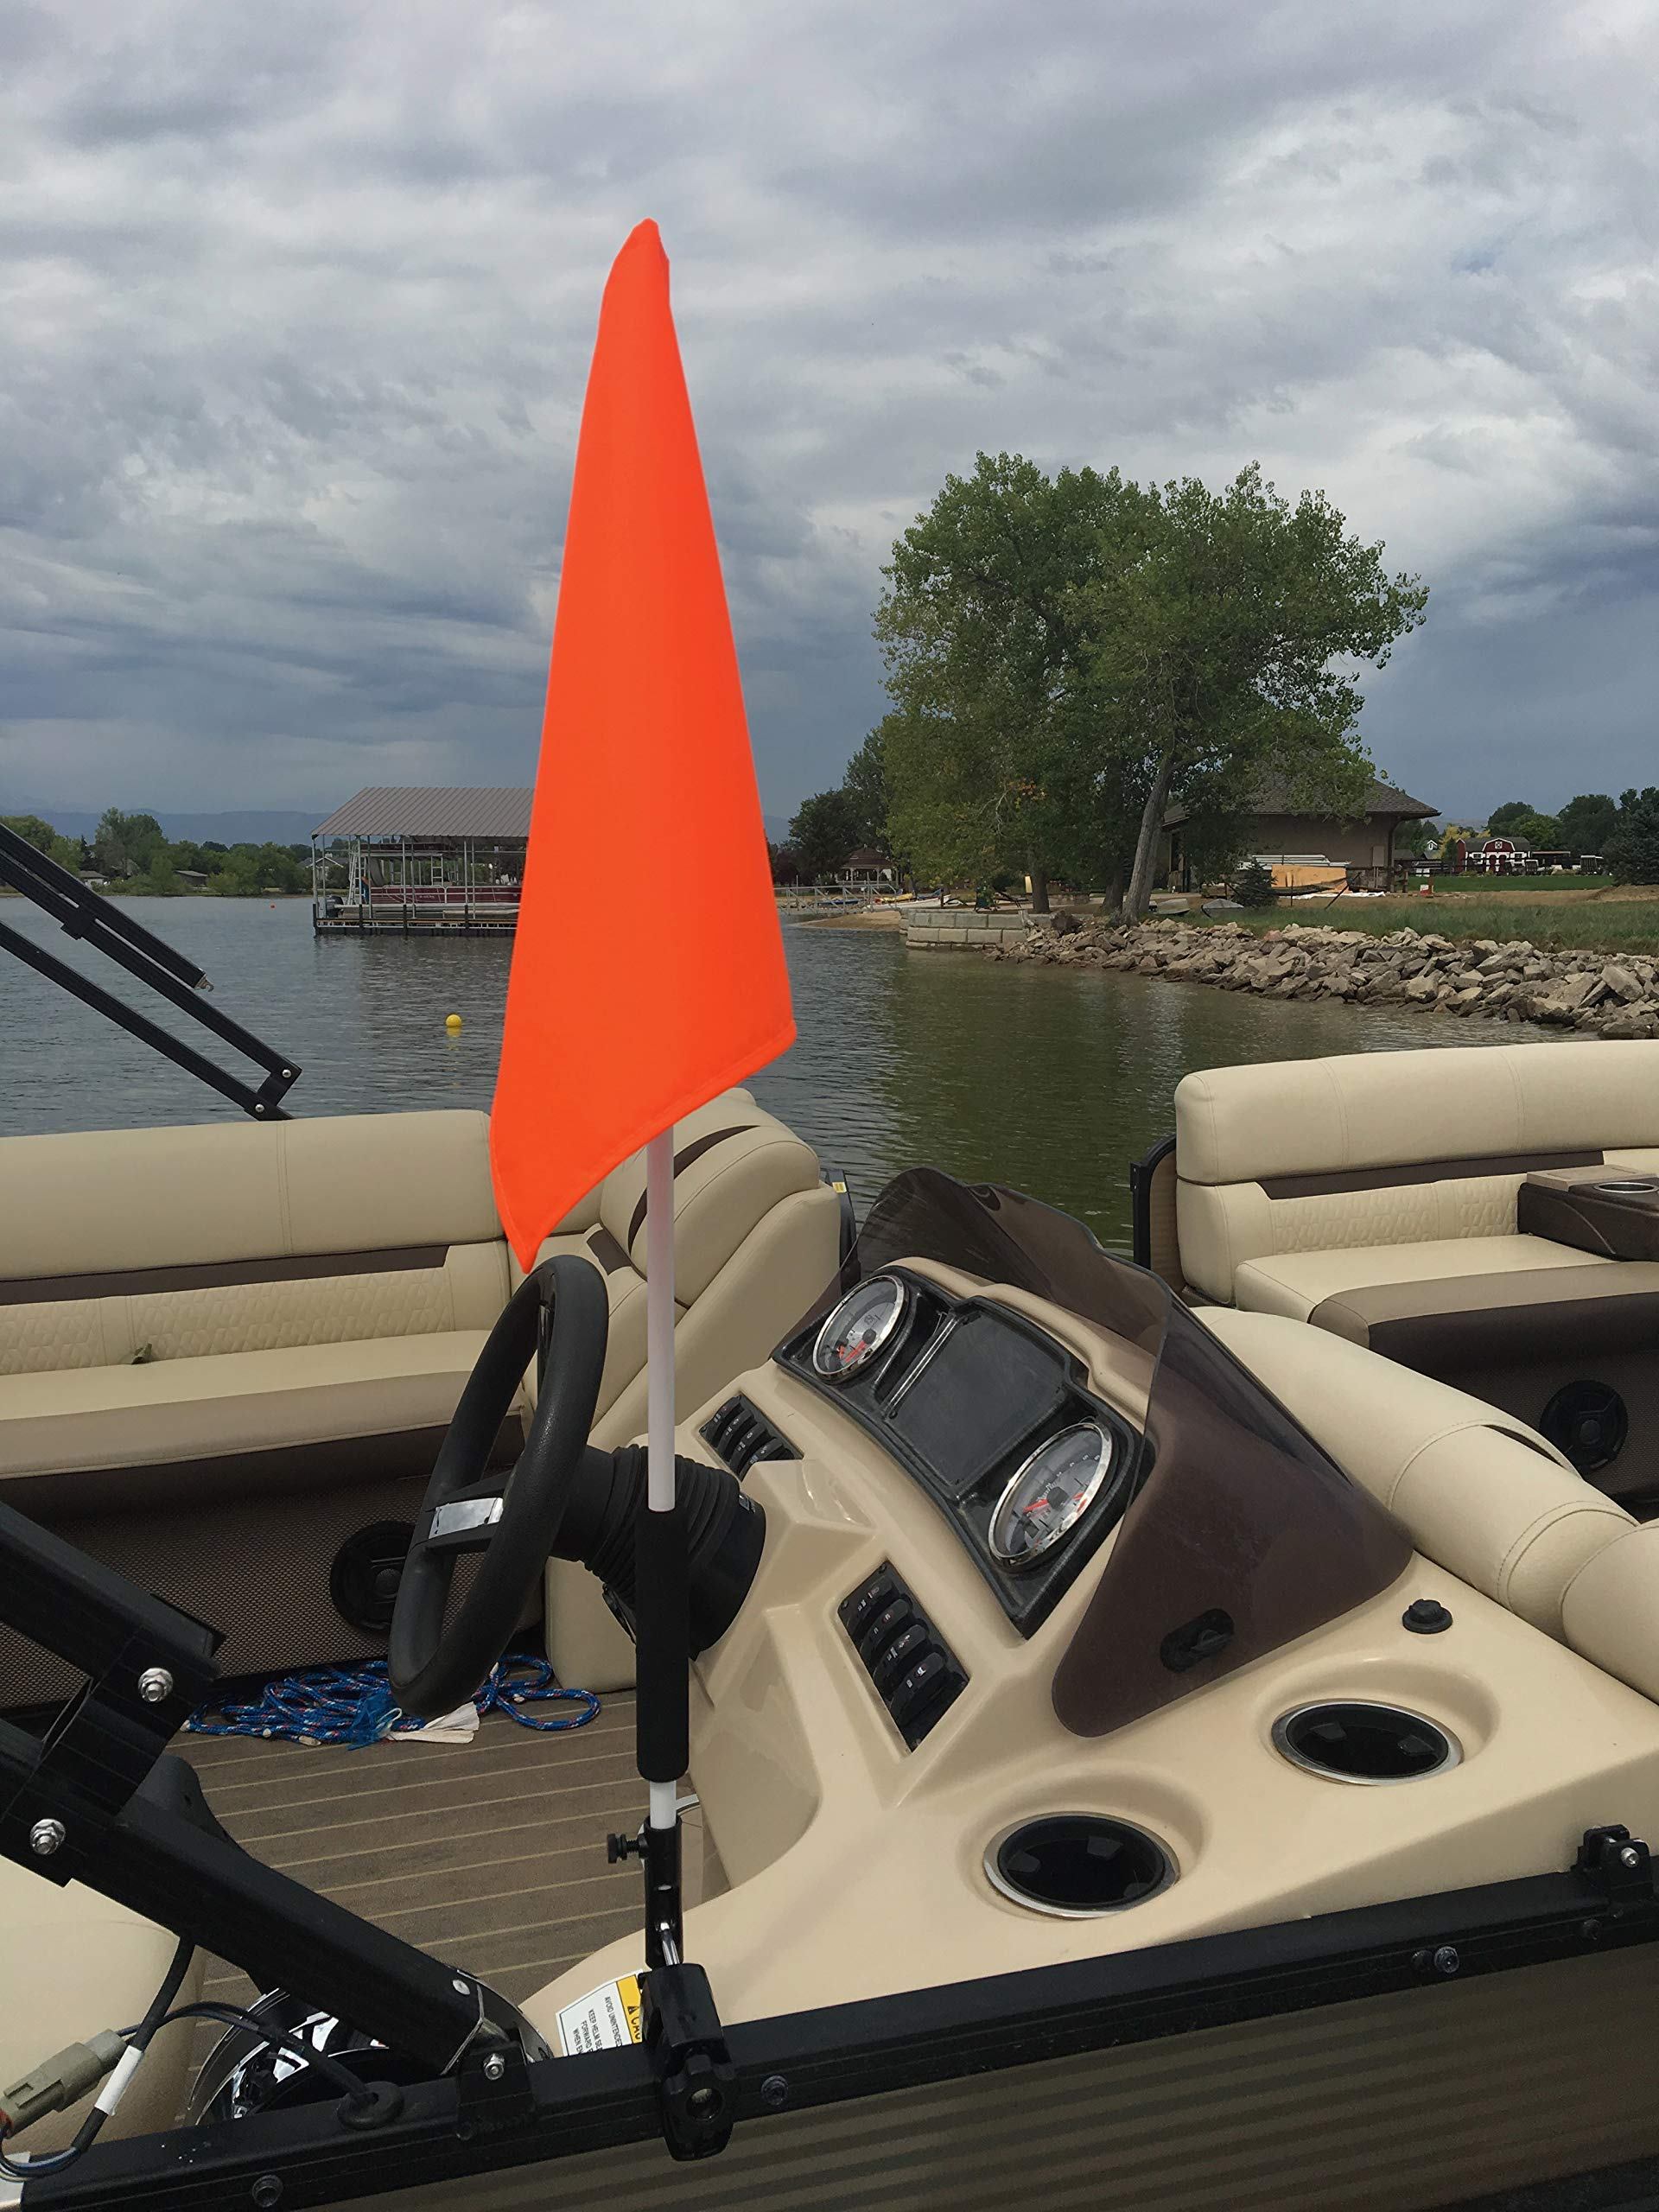 Pontoon Boat Flag Holder. Orange Safety Flag Included. Tired of Holding The Skier Down Flag? Just clamp The Flag Buddy to Your Boat and Rotate it up When Required. Rubbber Clamping Pads. by Caddie Buddy